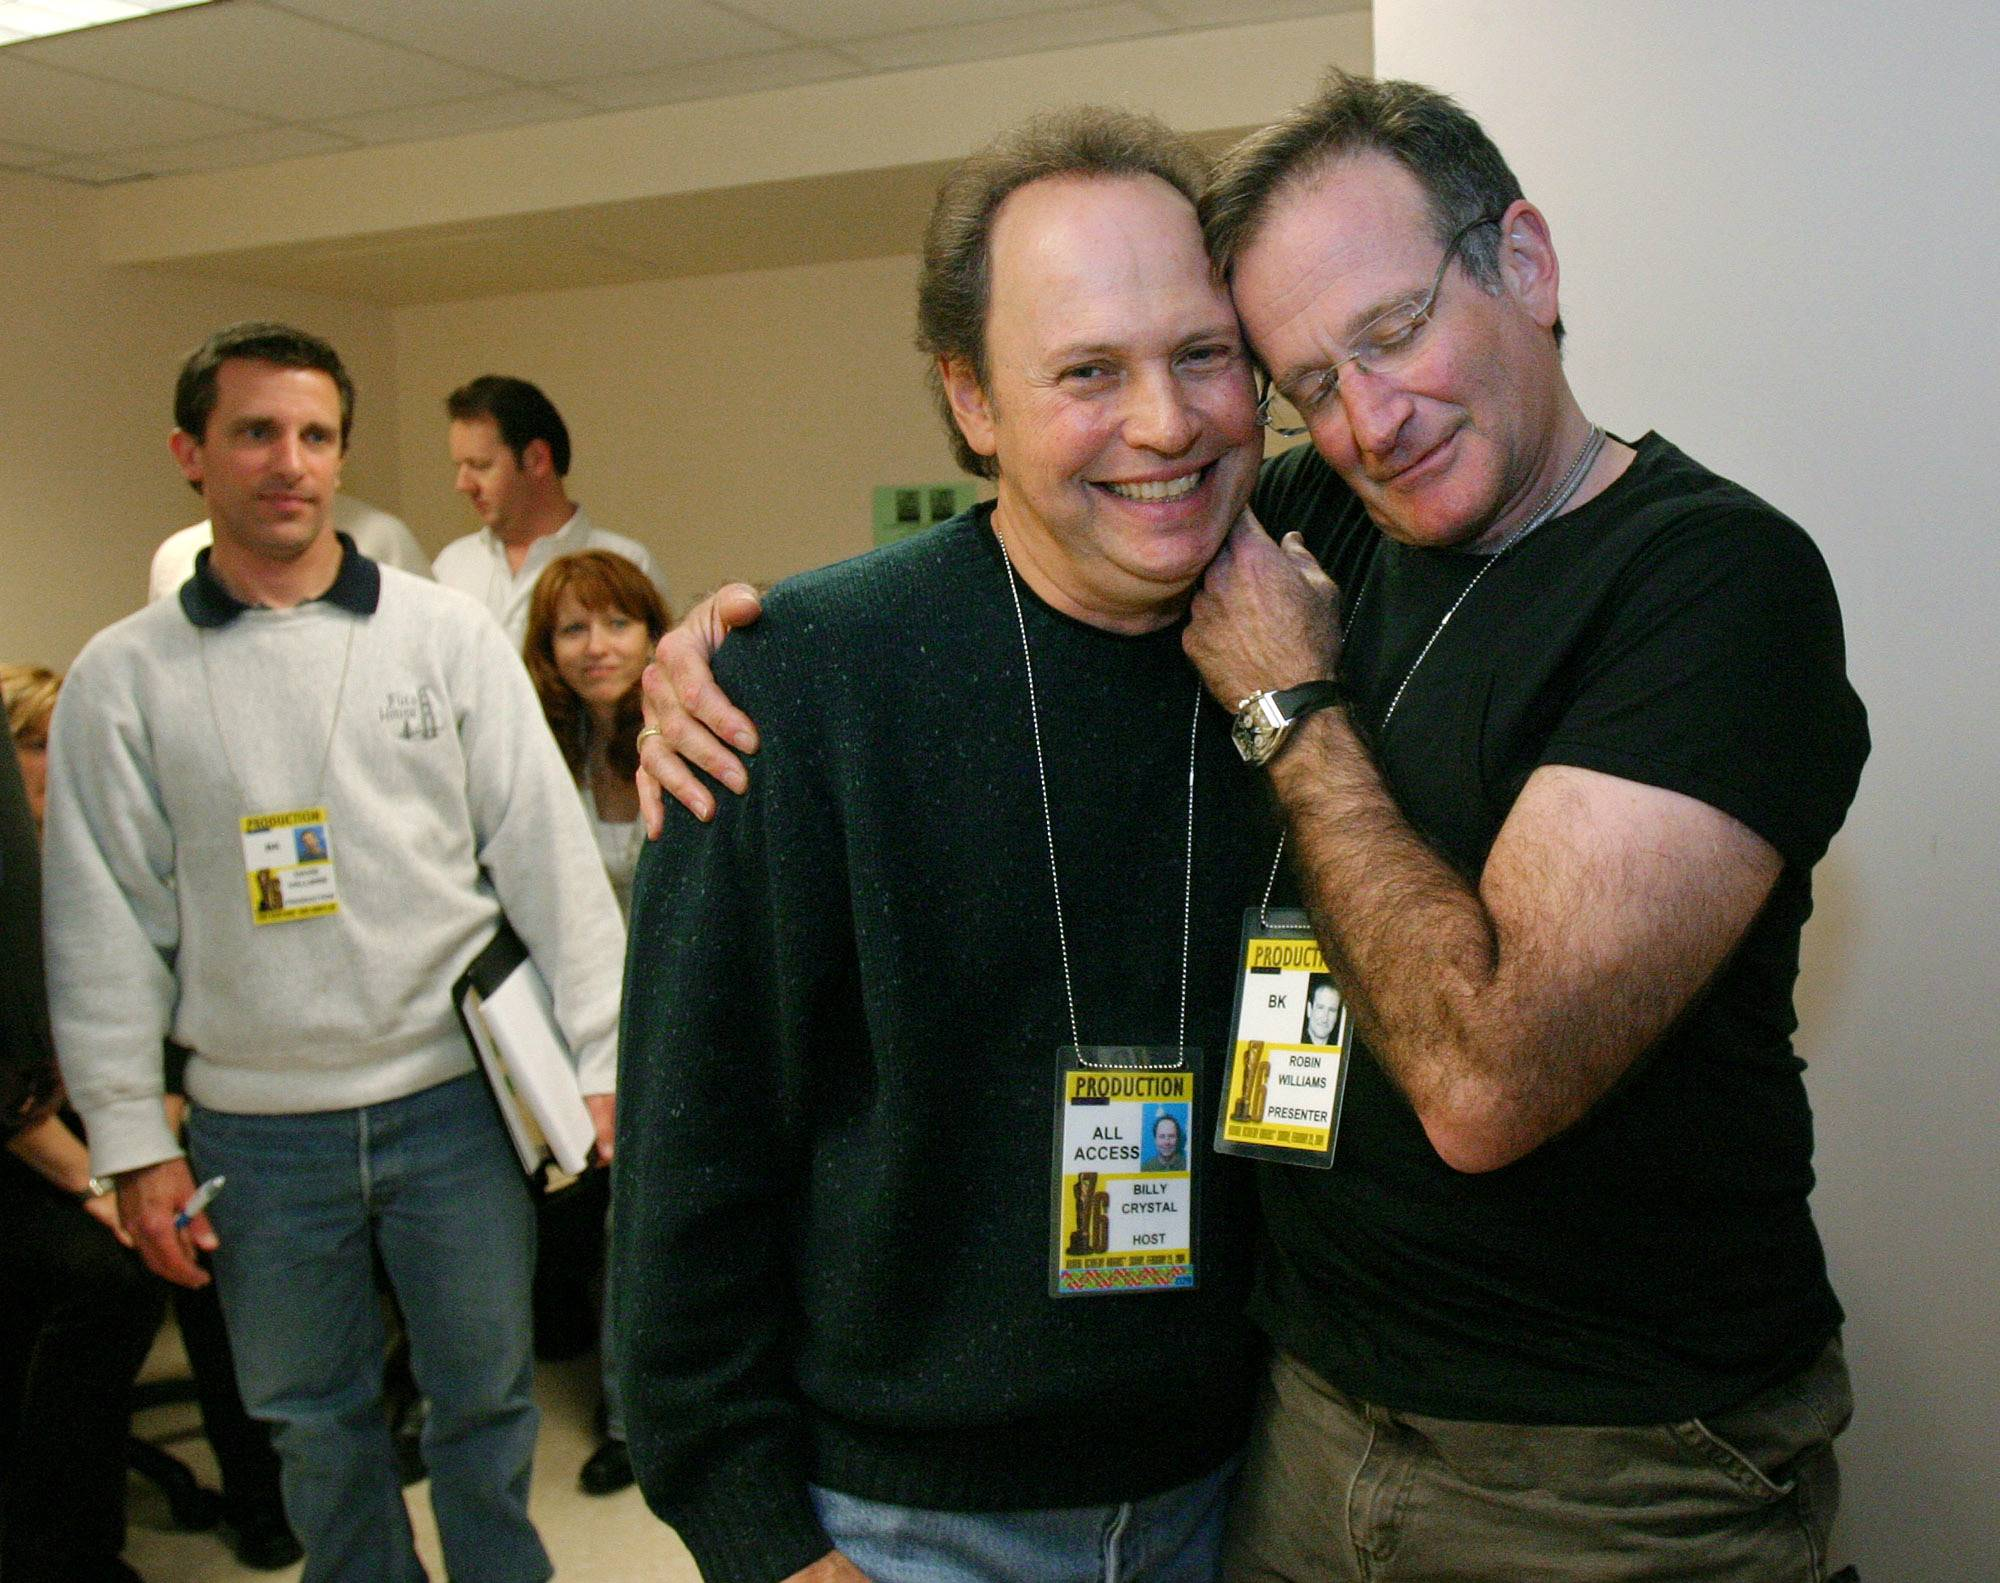 "FILE - This Feb. 28, 2004 file photo shows Oscar host Billy Crystal, center, and presenter Robin Williams, right, joking around after a writers' meeting for the 76th annual Academy Awards in Los Angeles. The producer of the Emmys says that Billy Crystal will pay tribute to Robin Williams during the awards ceremony. Executive producer Don Mischer said that Crystal will honor Williams as part of the traditional ""in memoriam"" segment for industry members who died during the past year. Williams was found dead by suicide in his Northern California home Aug. 11."